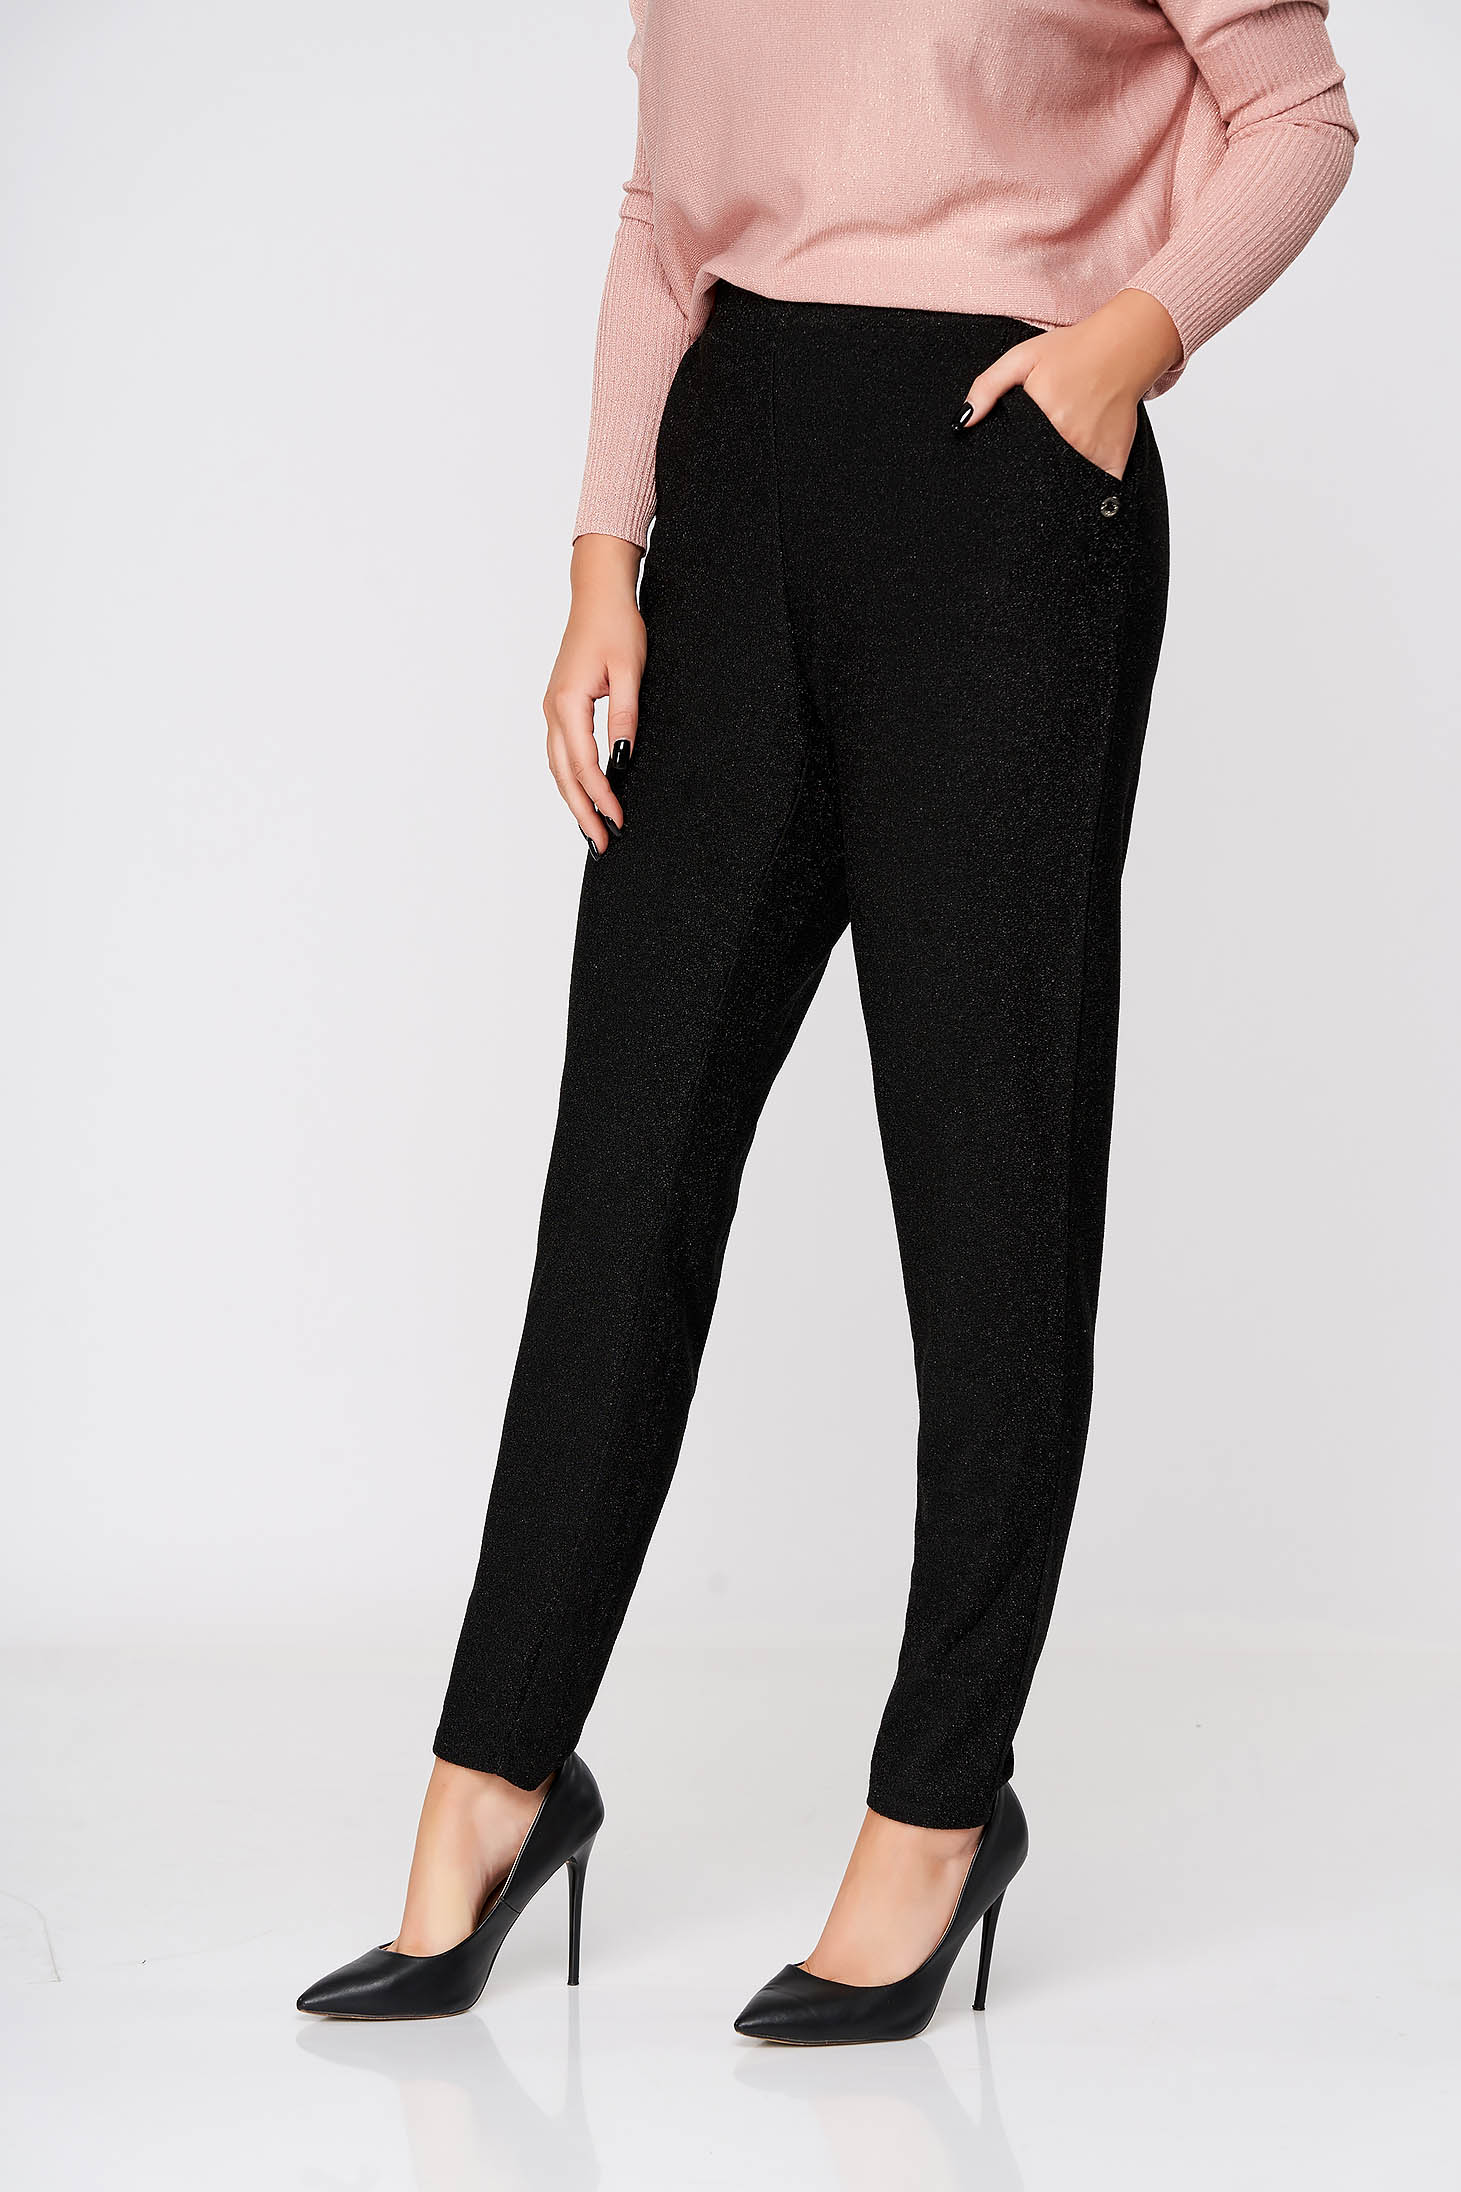 Black trousers casual conical with pockets long